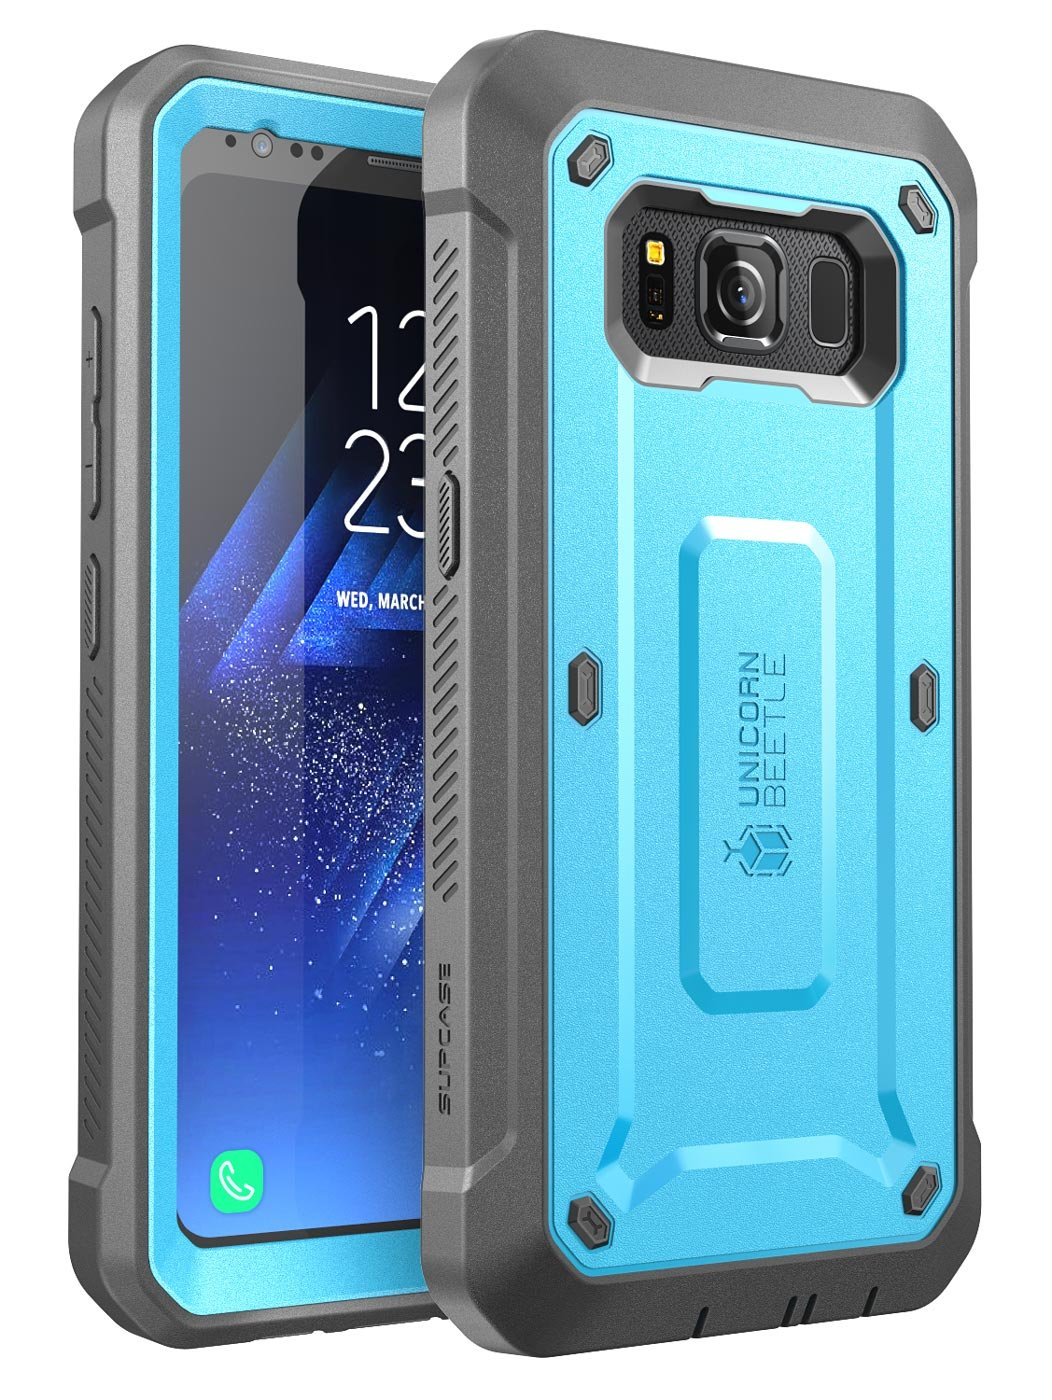 SupCase Galaxy S8 Active Case, [Unicorn Beetle PRO Series] Full-Body Rugged Holster Case with Built-in Screen Protector for Samsung Galaxy S8 Active (Not Fit Regular Galaxy S8/S8 Plus) (Blue/Gray)